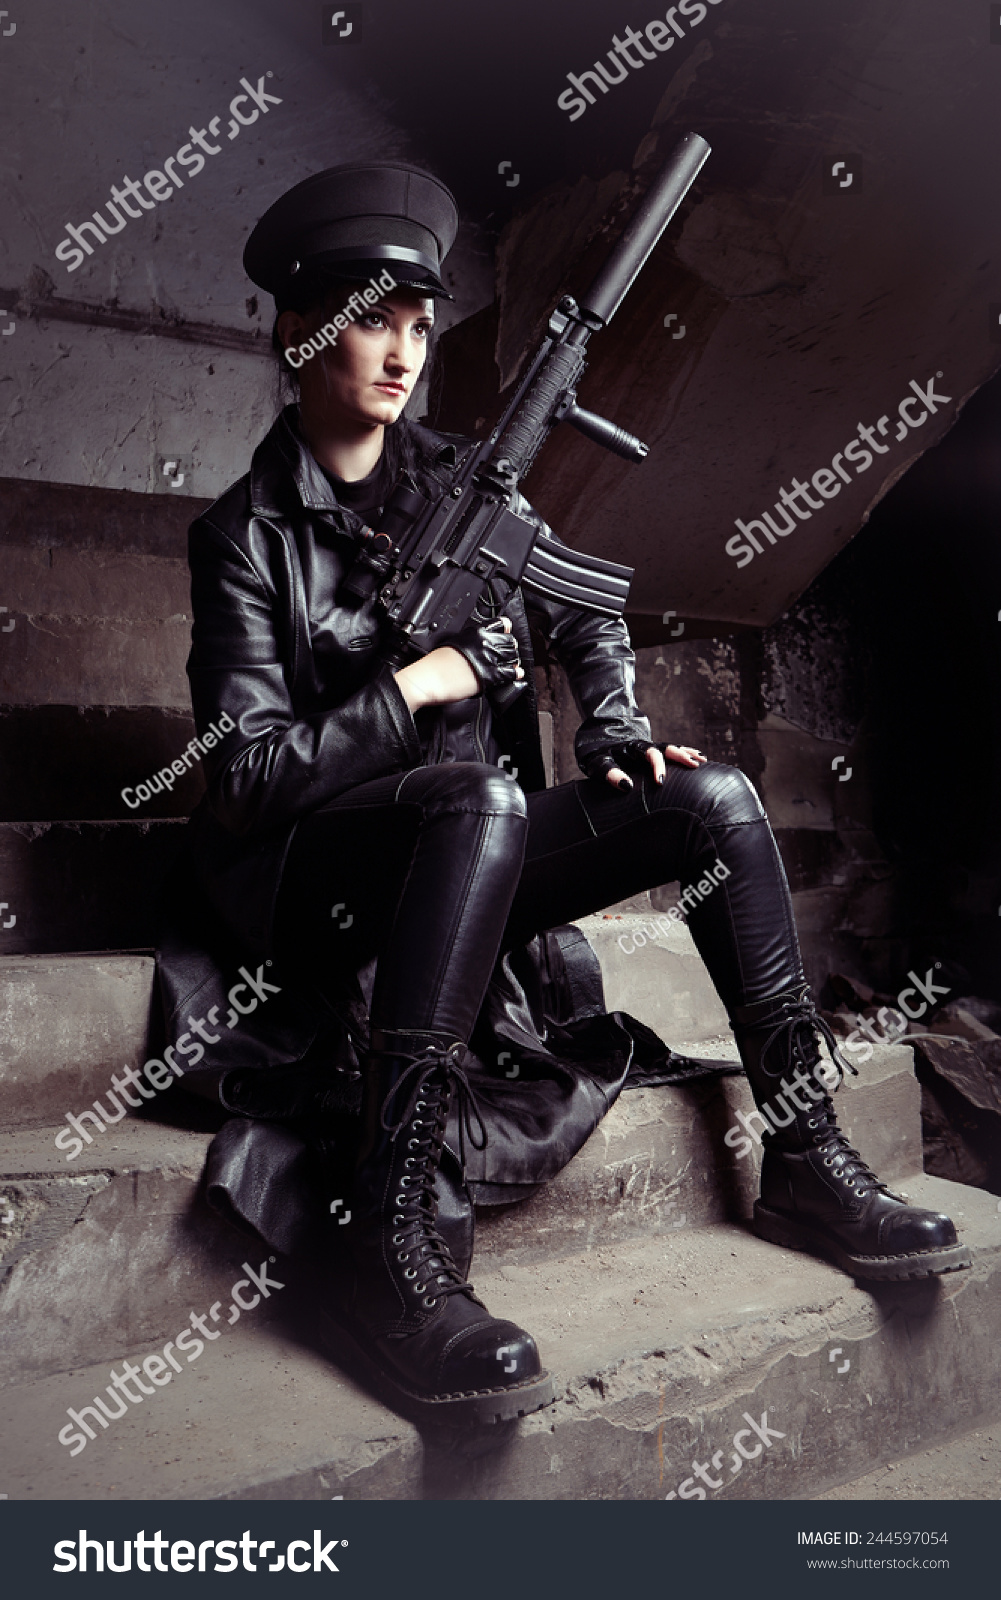 Fetish leather military woman on patrol